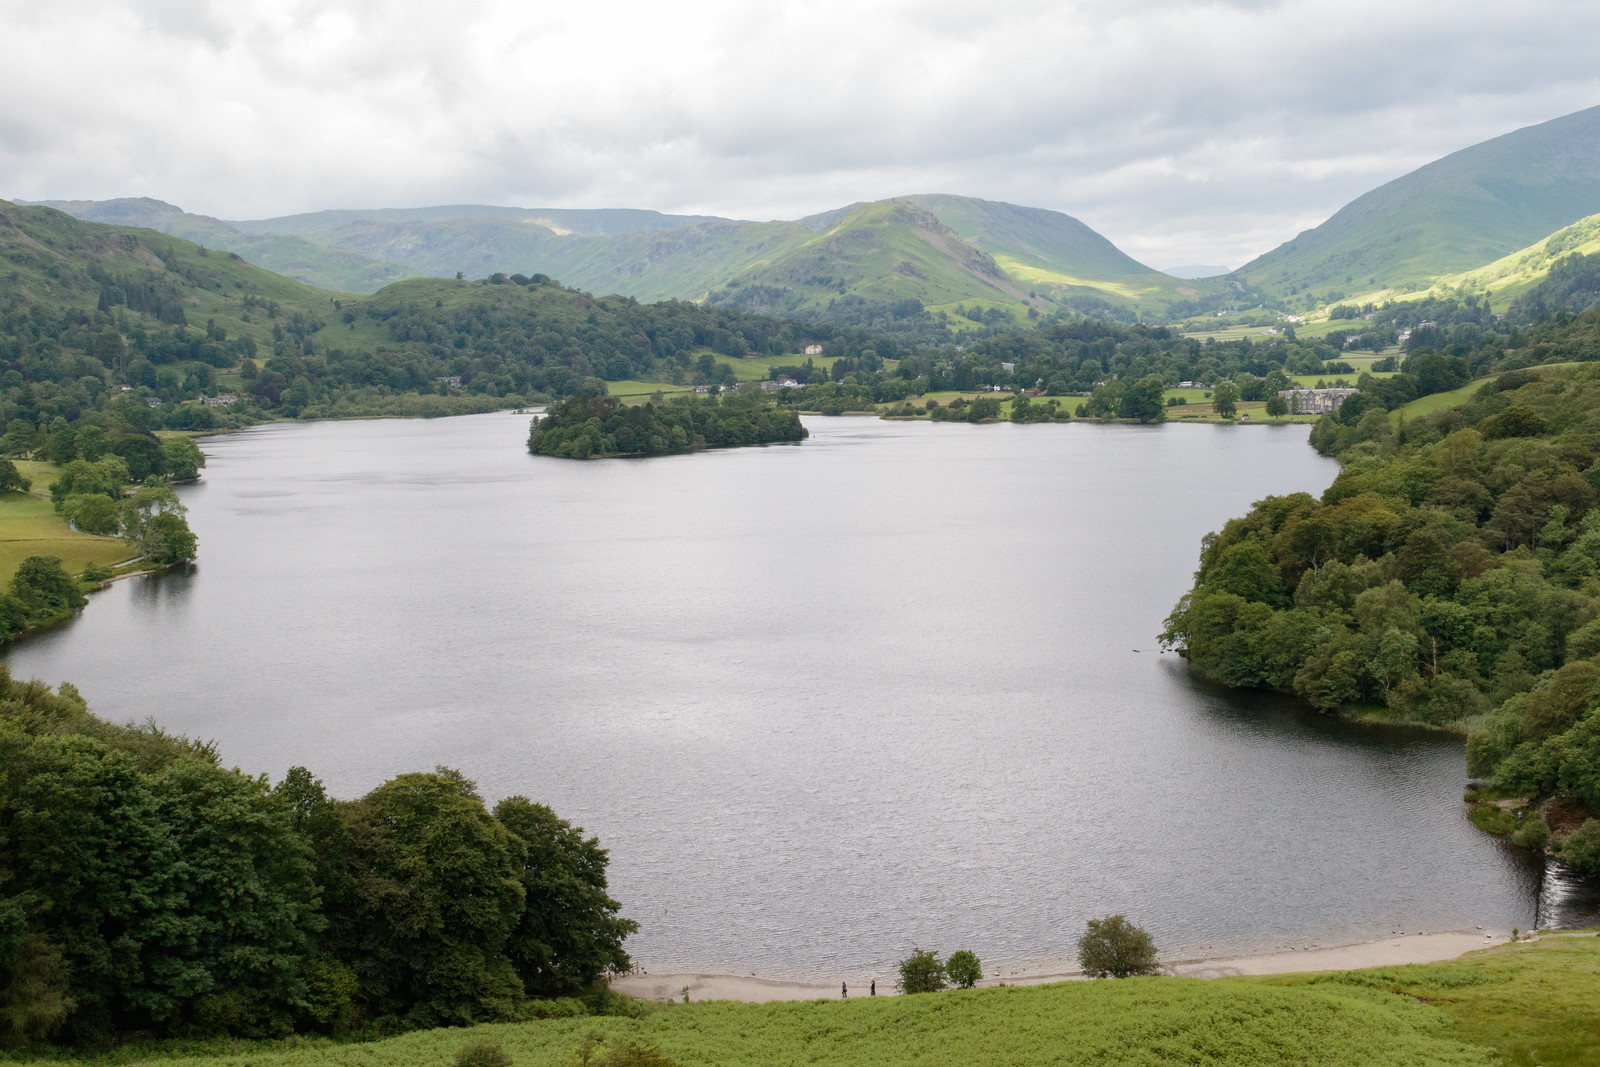 View over Grasmere Lake